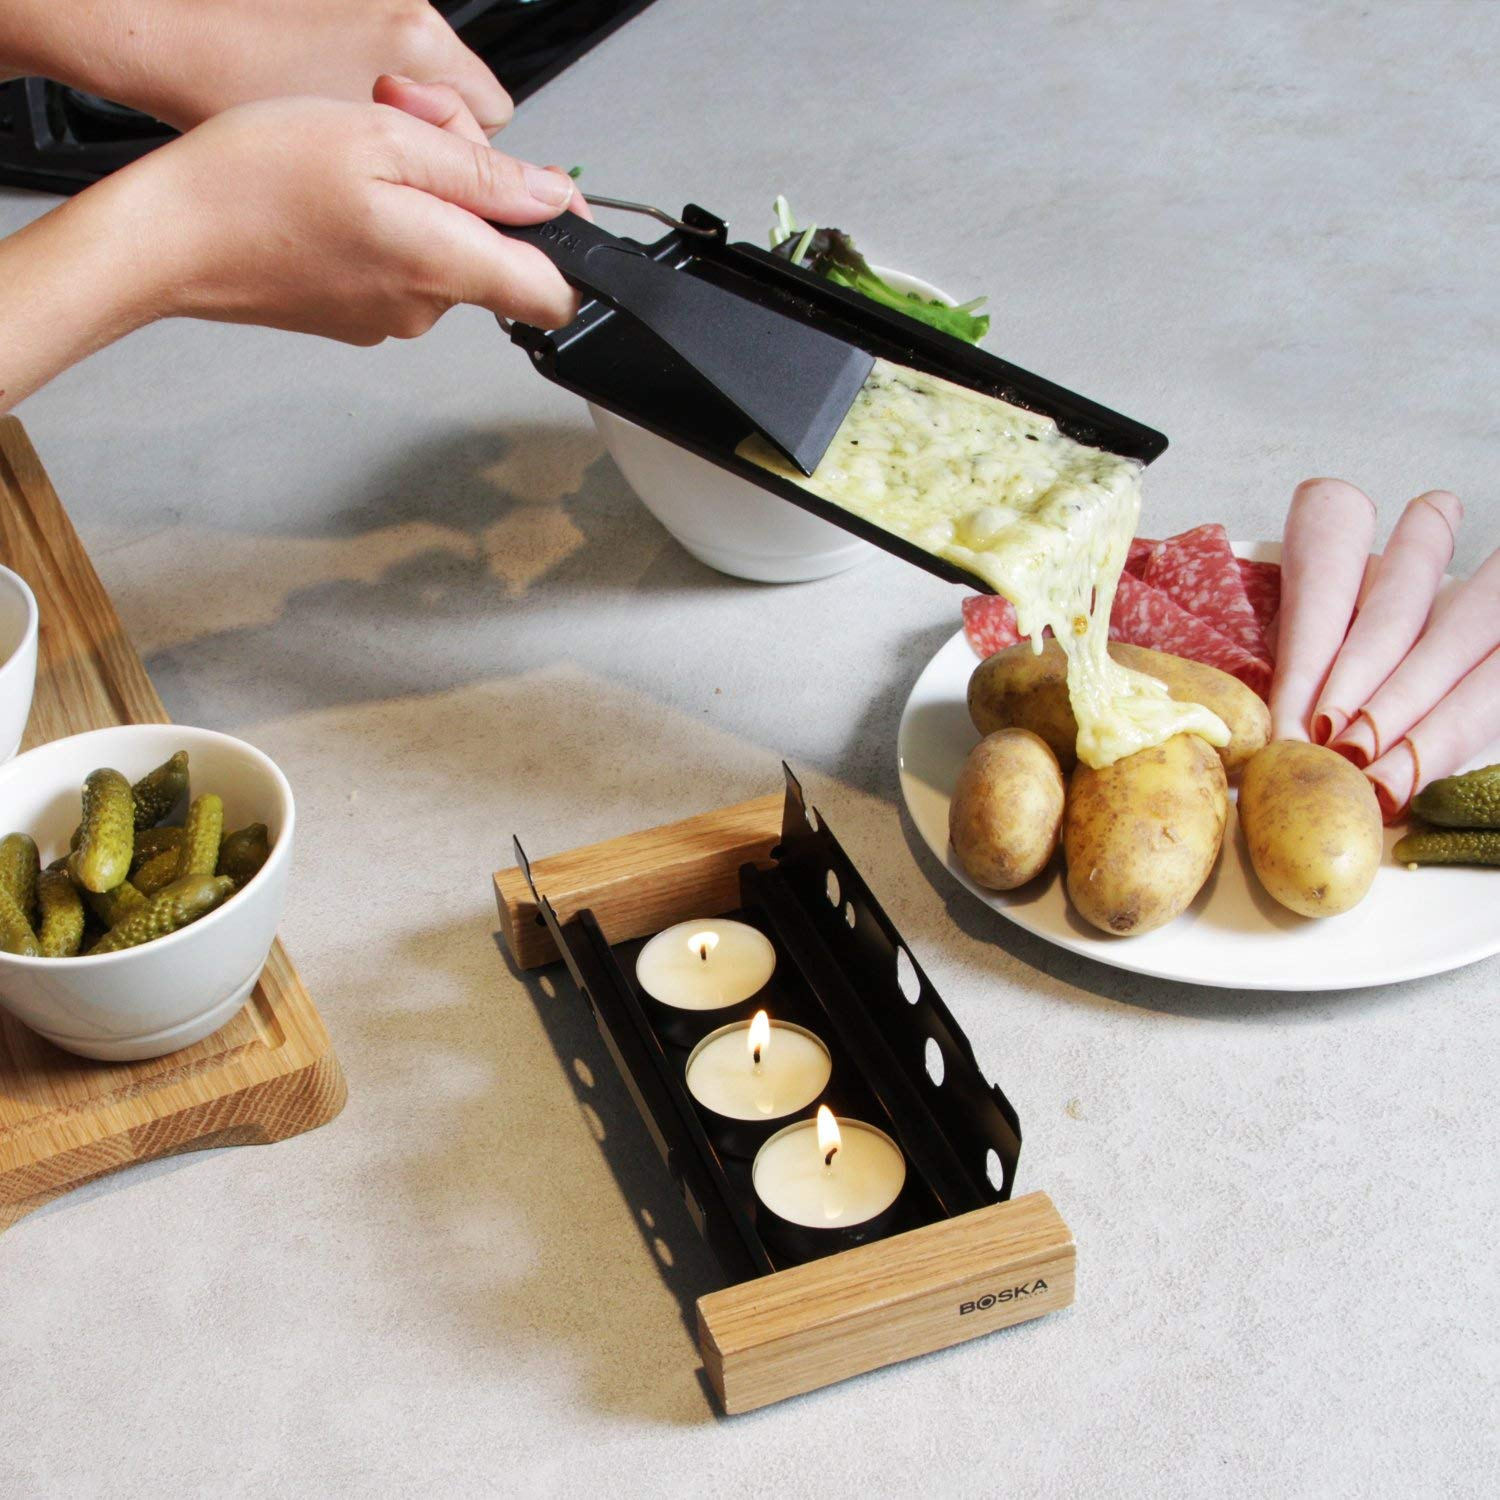 Portable Raclette for Melting Cheese